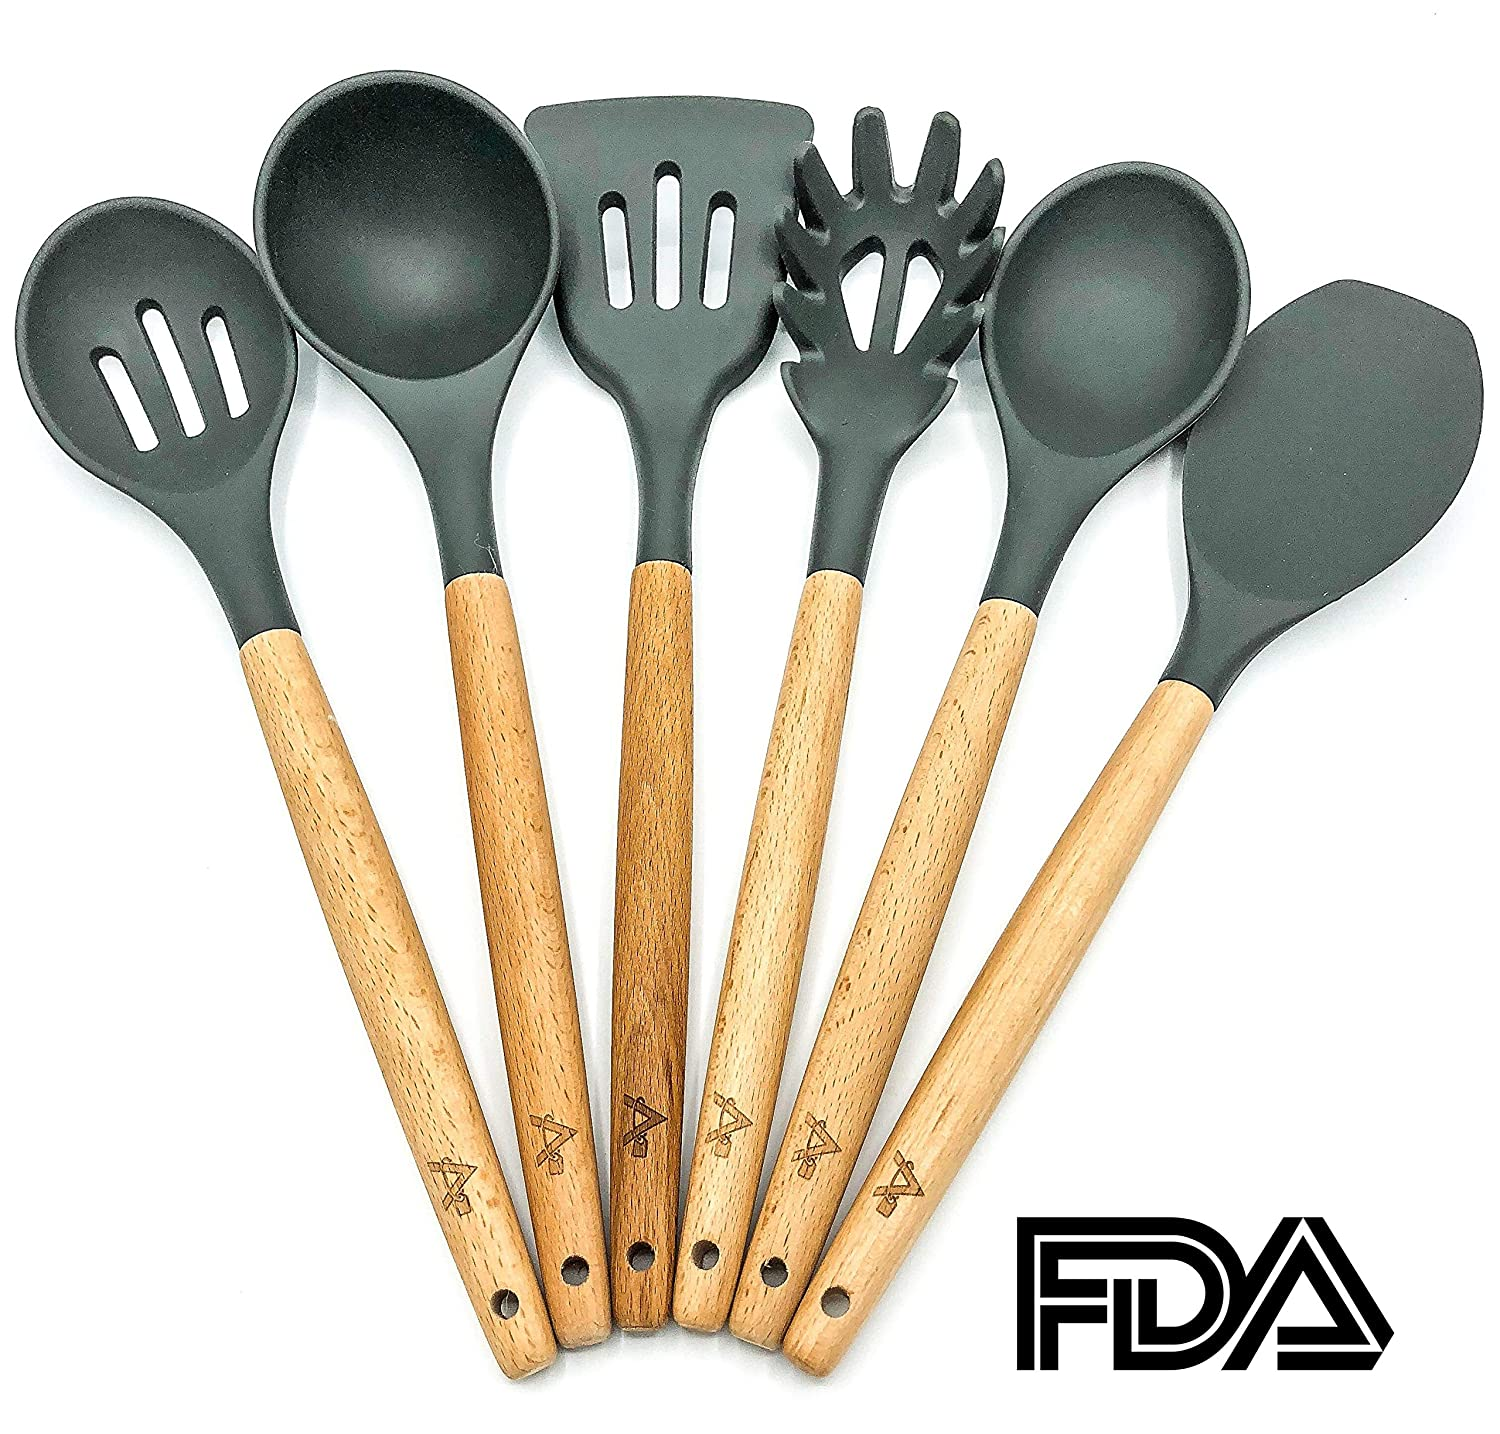 AMRON817 Grey 6 Piece Kitchen Utensil Set - Silicone and Beech Wood Without Breaking The Bank!